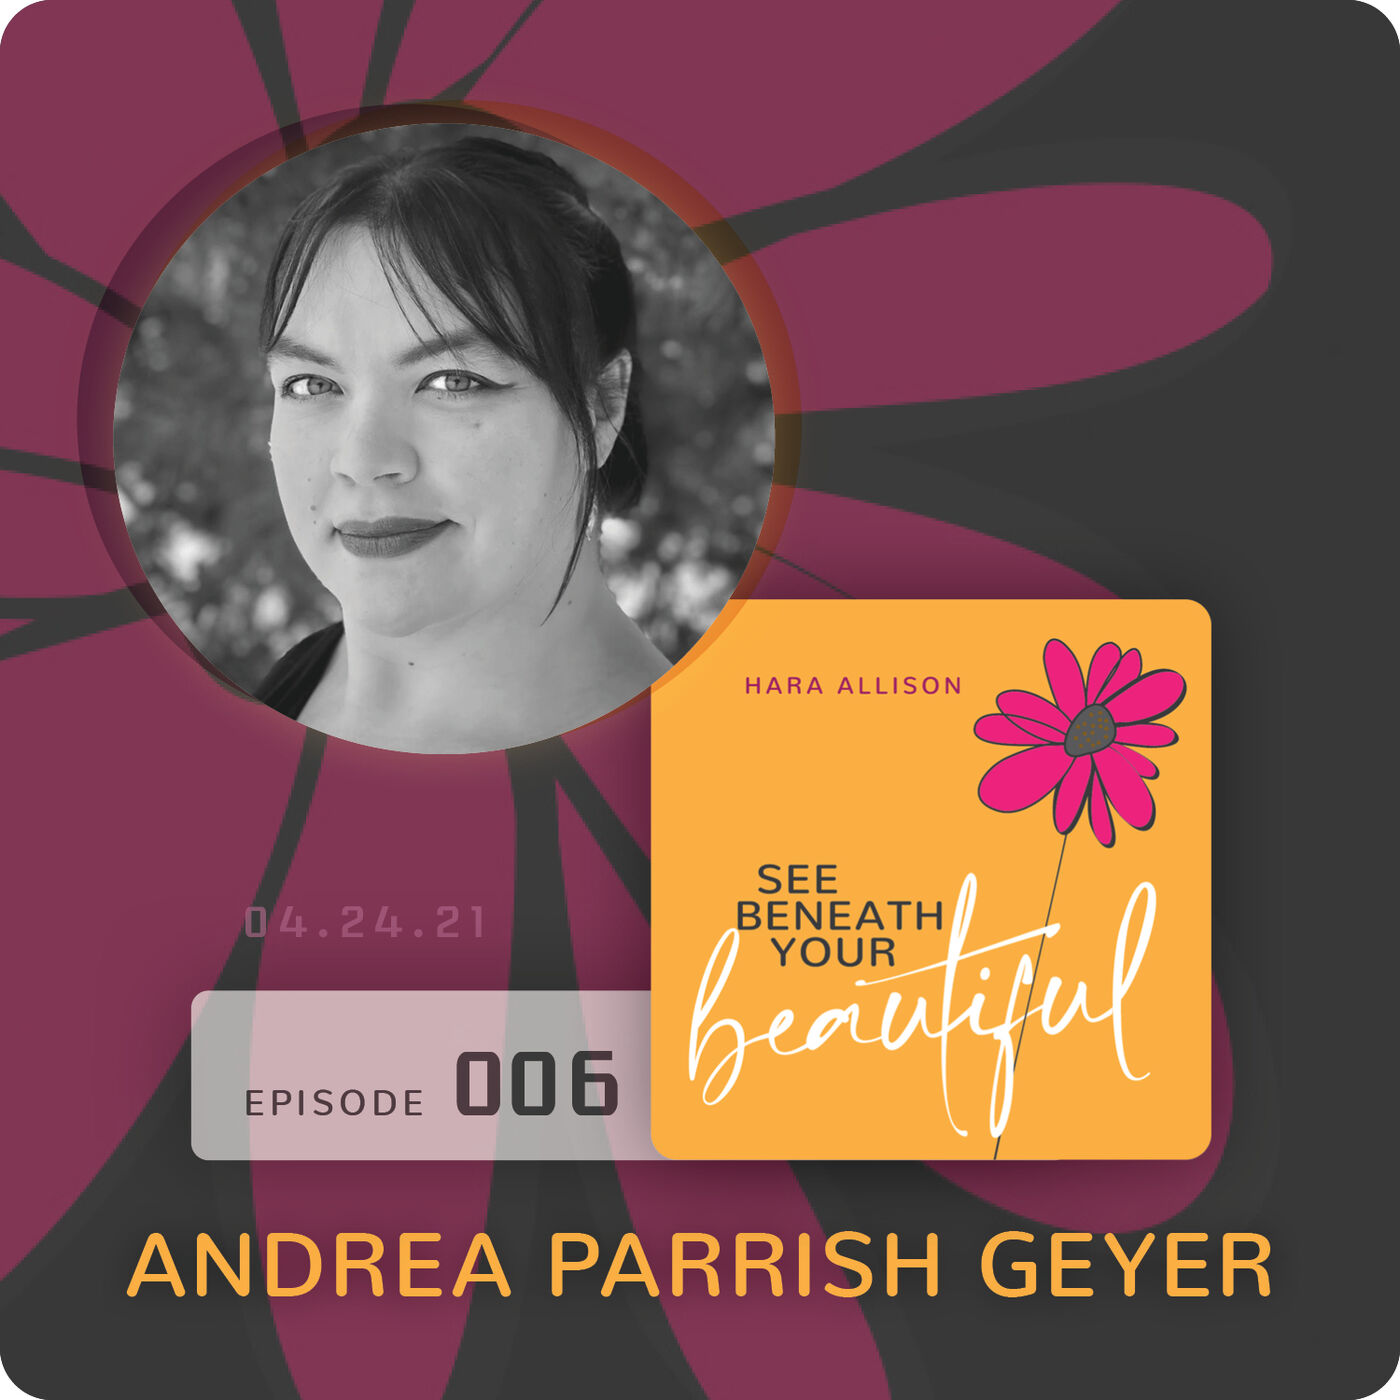 006. Andrea Parrish Geyer discusses questions, public speaking, weight, shame, polyamory, pansexuality, ethical non-monogamy, platonic wives, being an embodied ghost and a giant spider on stage